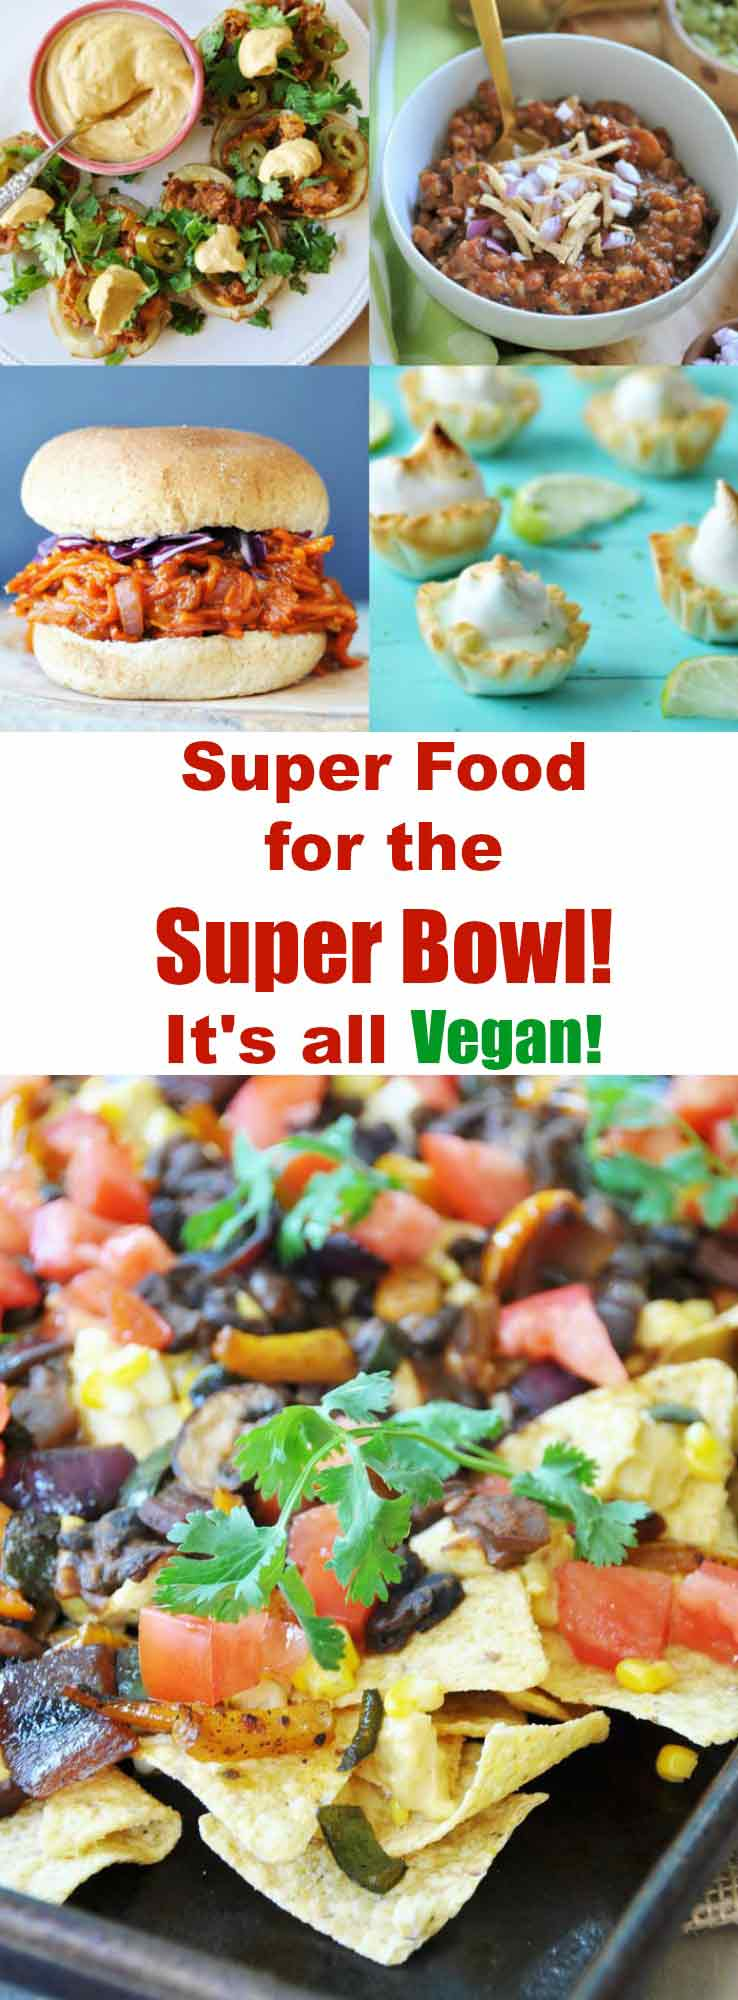 Delicious food for the Super Bowl that happens to be Vegan!